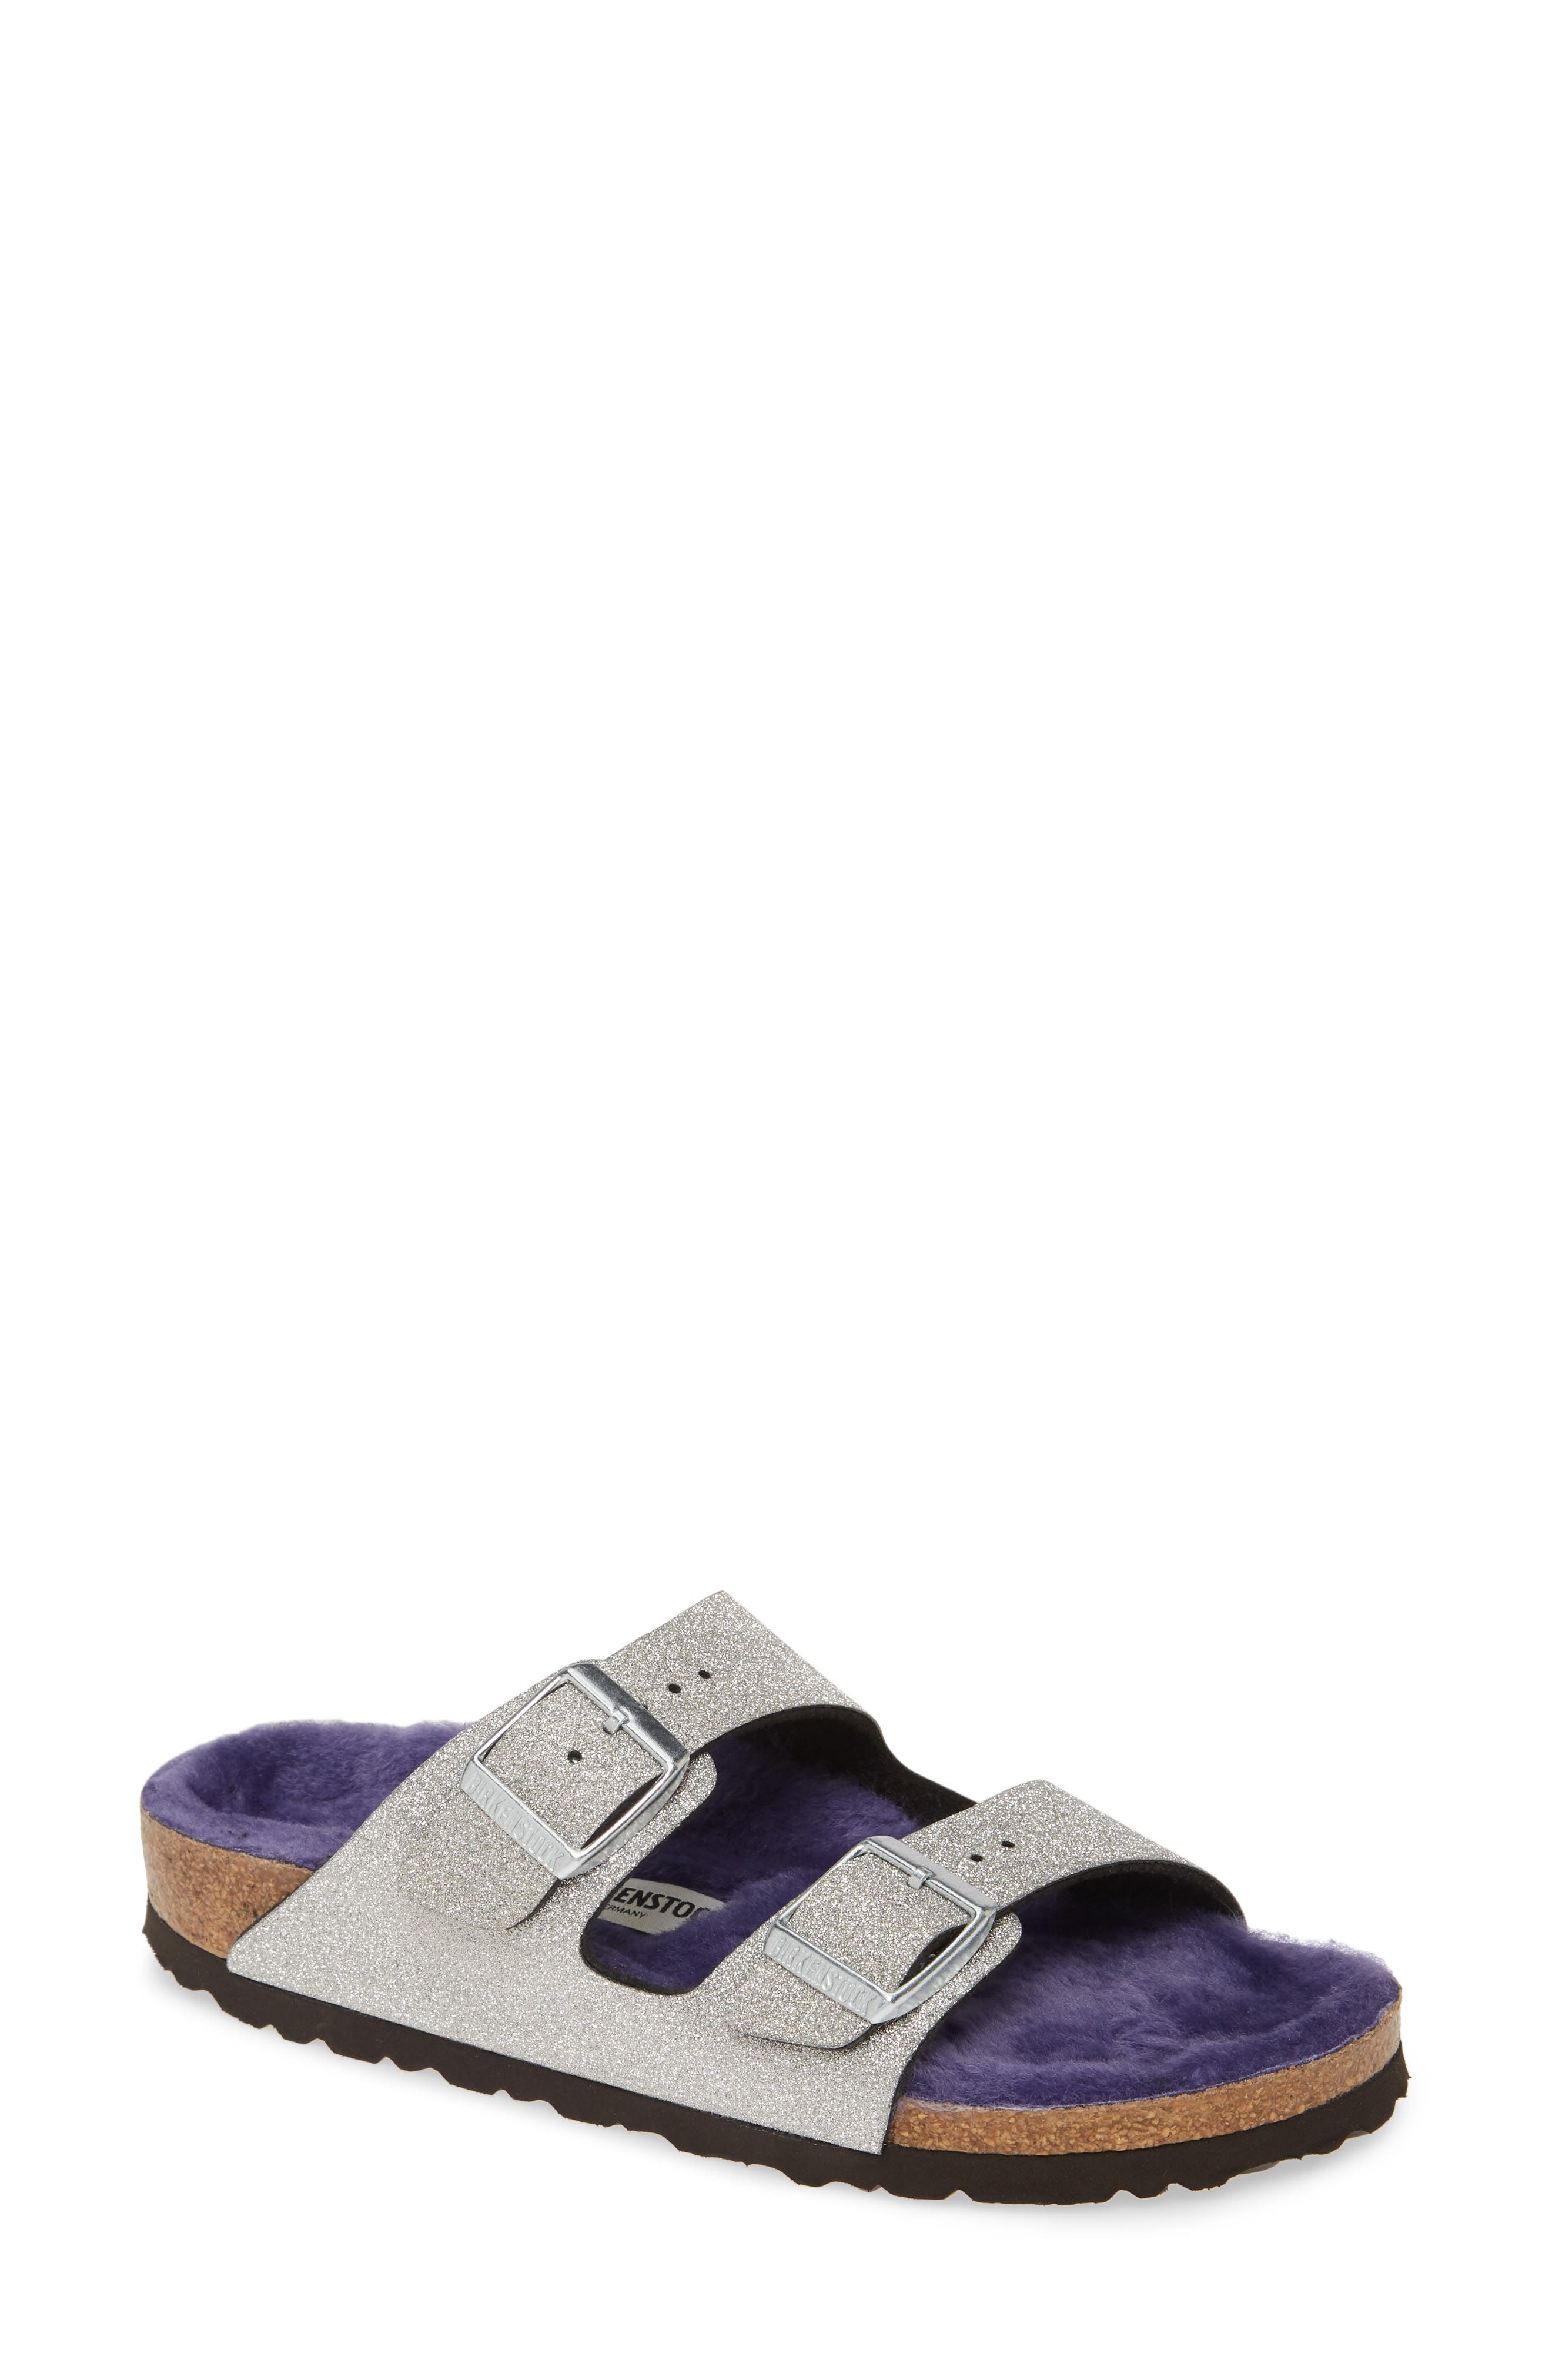 Birkenstock Arizona Glitter Dust Genuine Shearling Slide (Women)